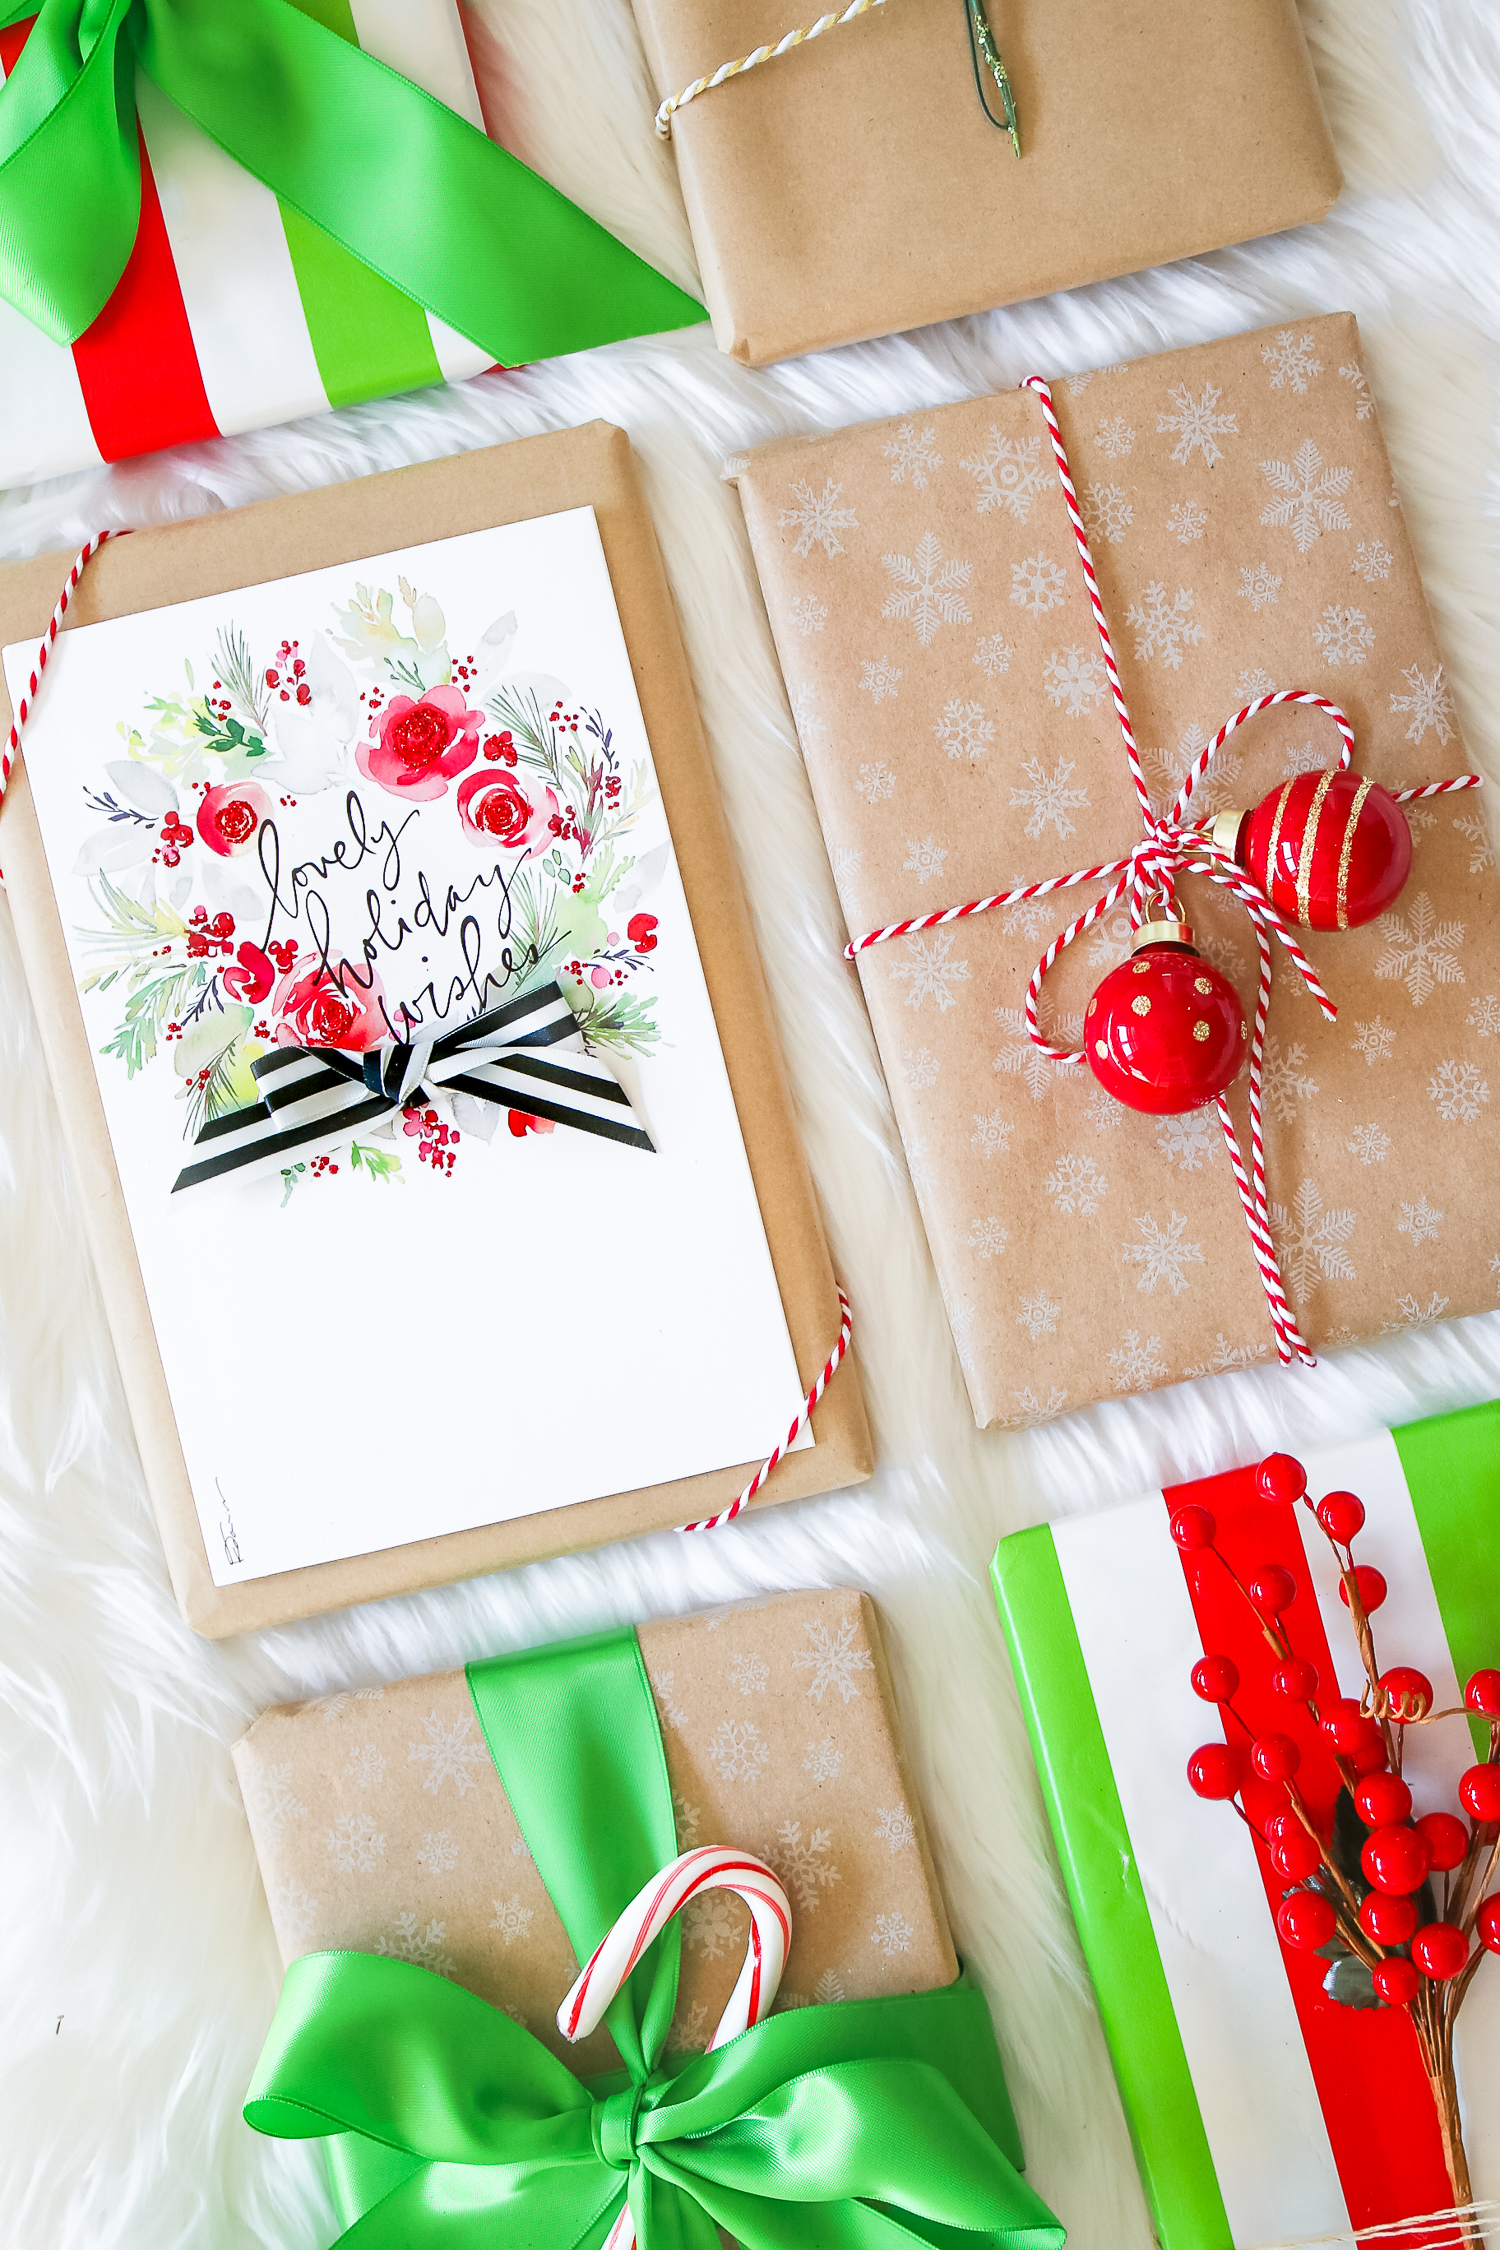 Elegant holiday gift wrap ideas diary of a debutante creative and elegant holiday gift wrap ideas by southern blogger stephanie ziajka from diary of a negle Choice Image